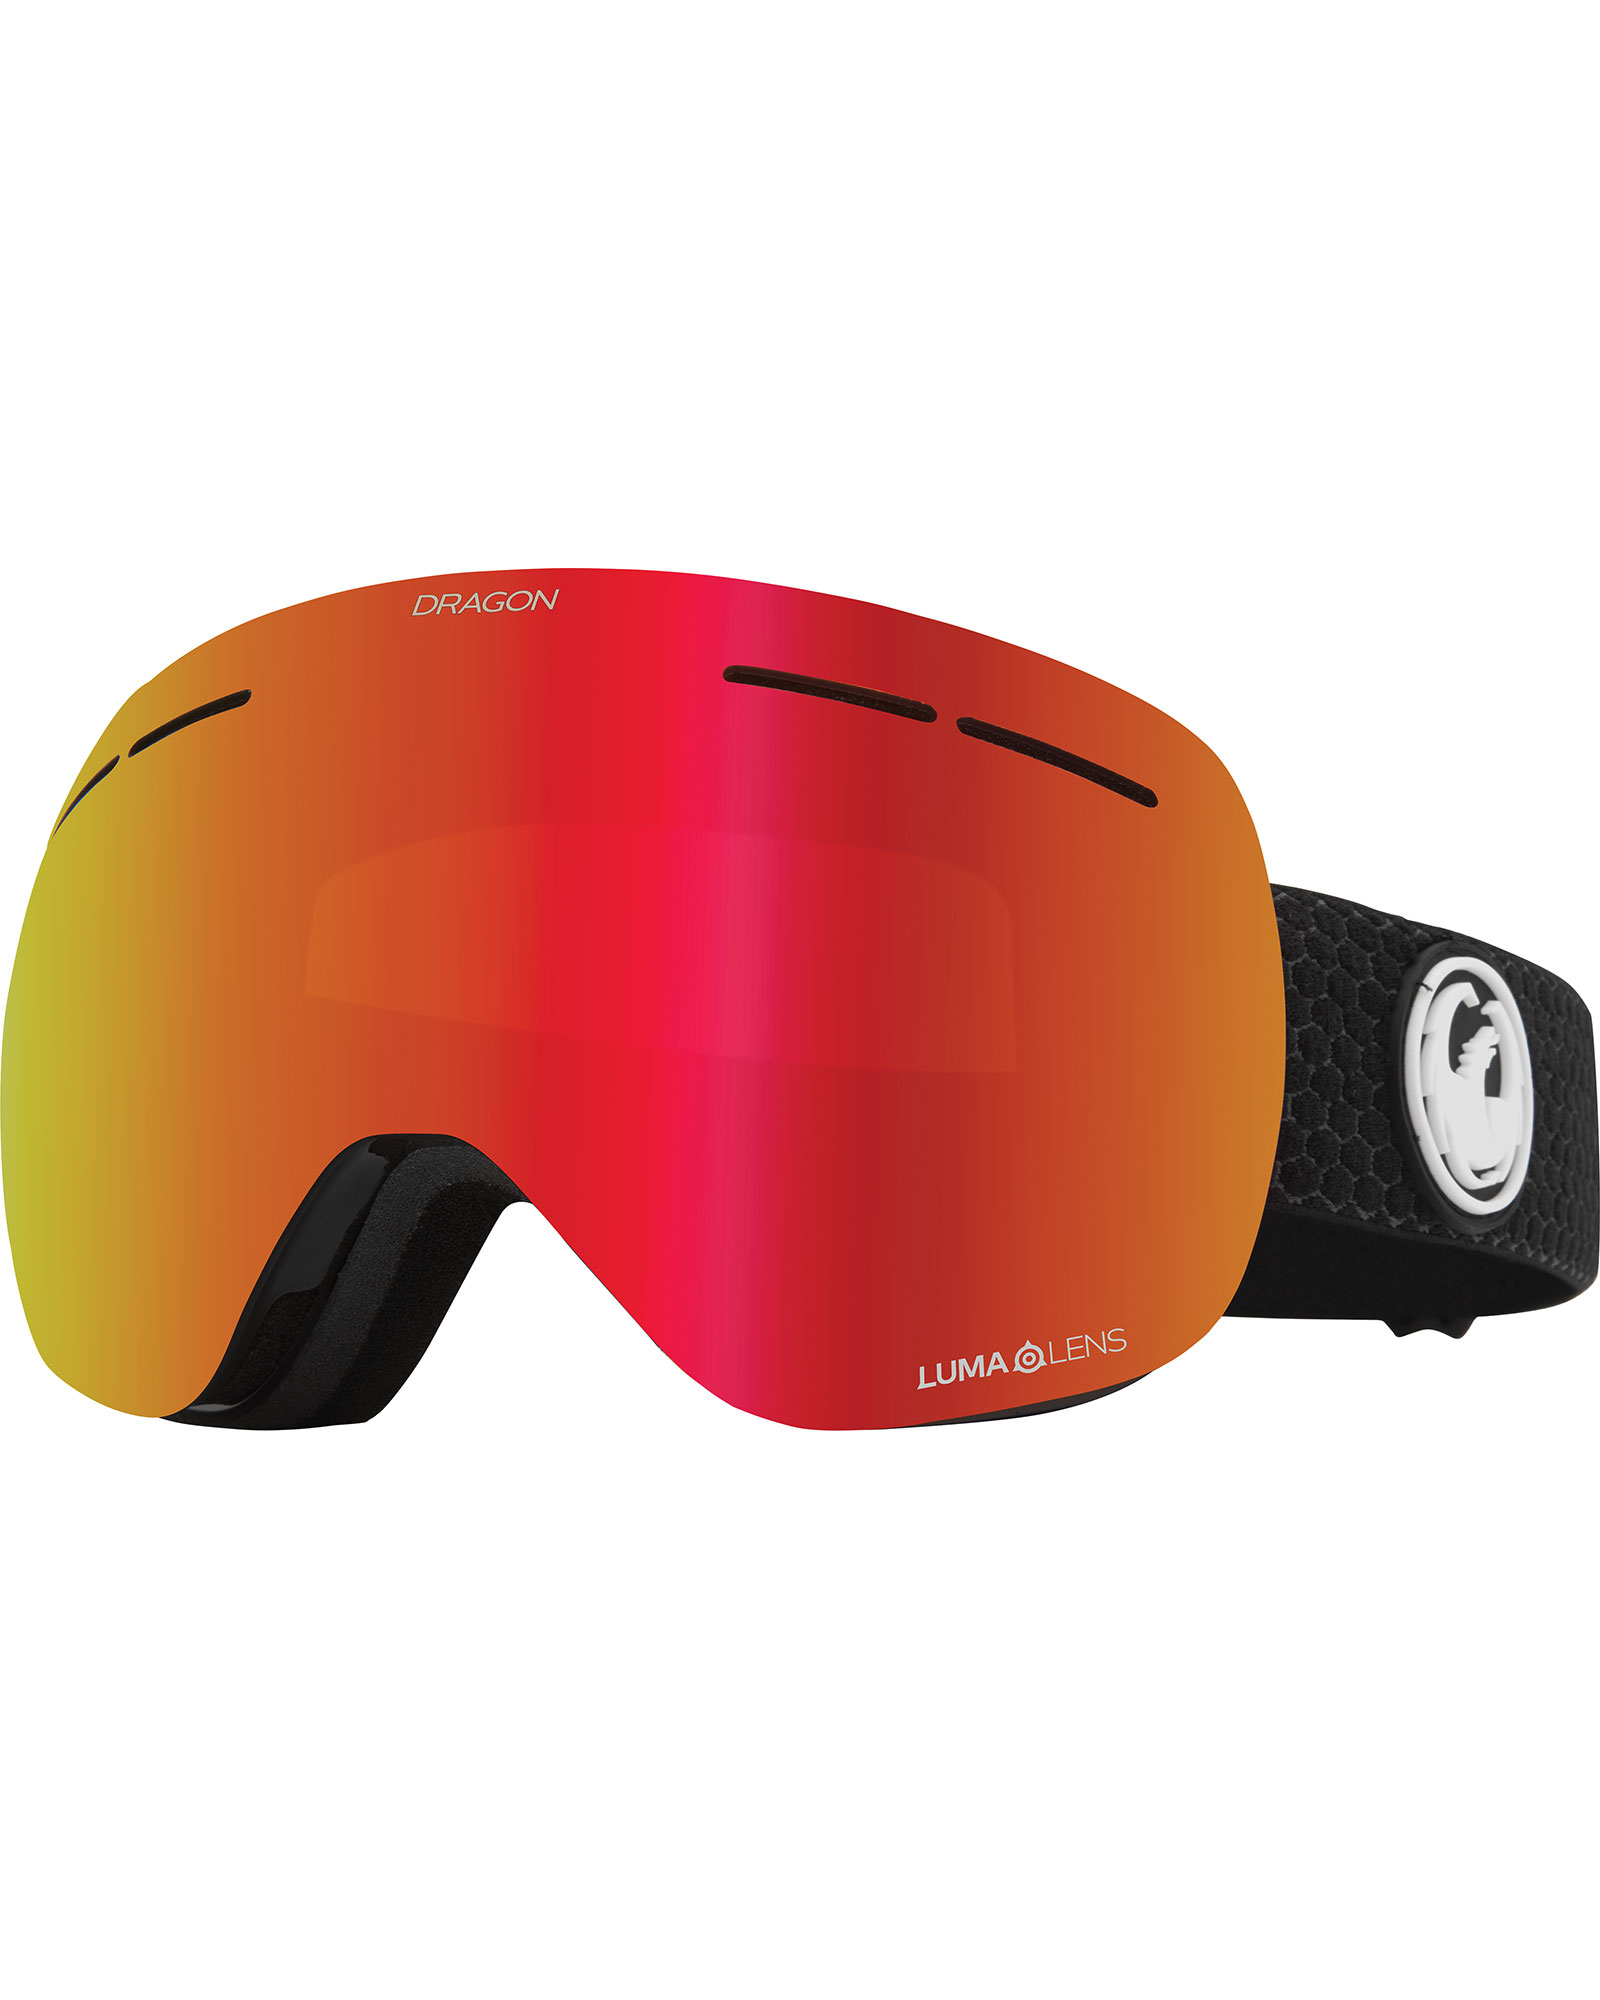 Dragon X1s Split / Lumalens Red Ionized + Lumalens Light Rose Goggles 2020 / 2021 0